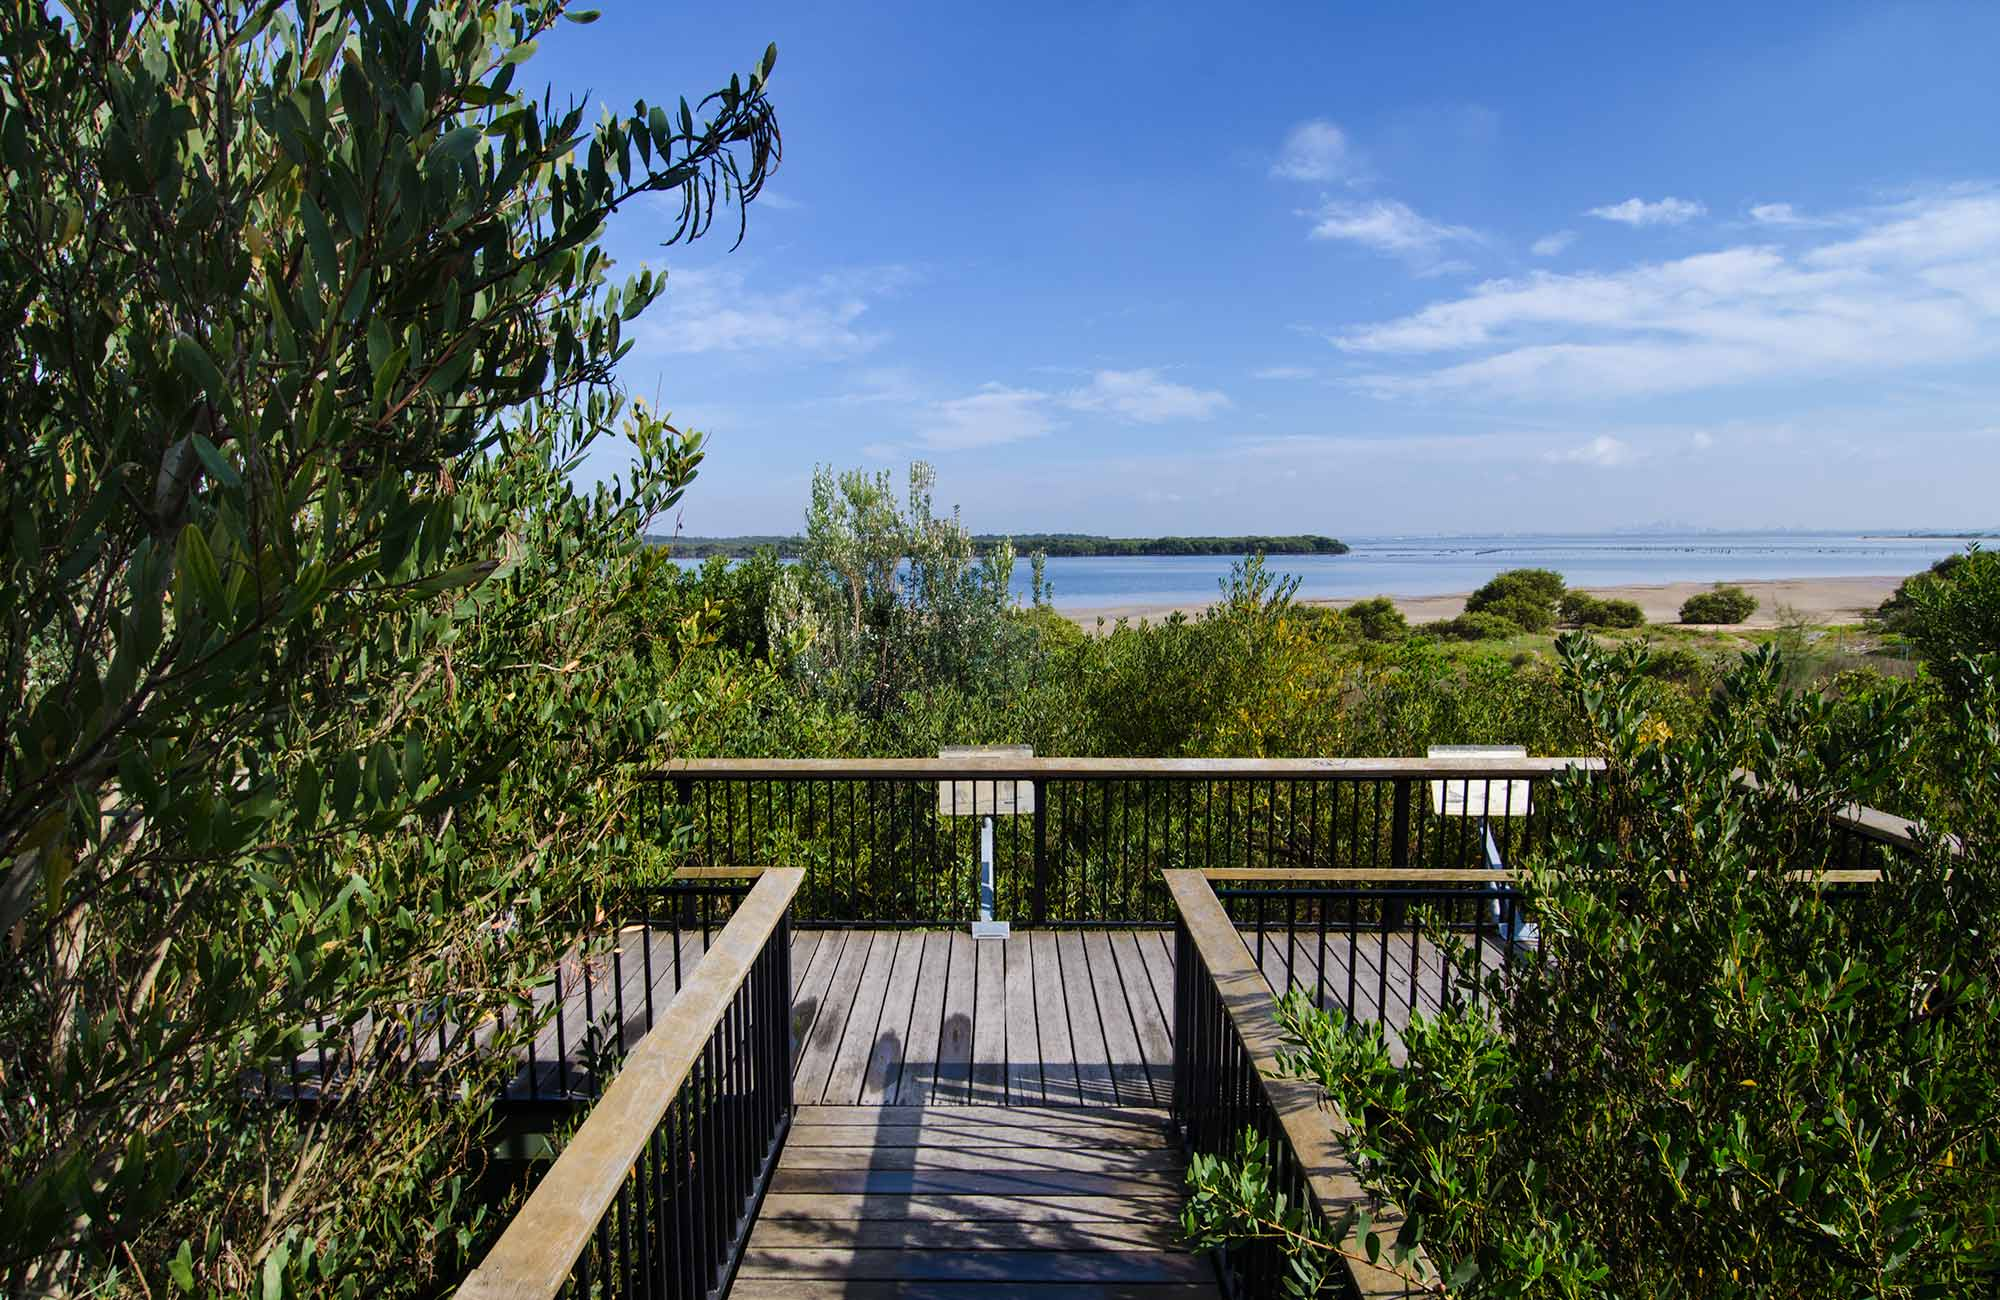 Quibray viewing platform, Towra Point Nature Reserve. Photo: John Spencer/NSW Government